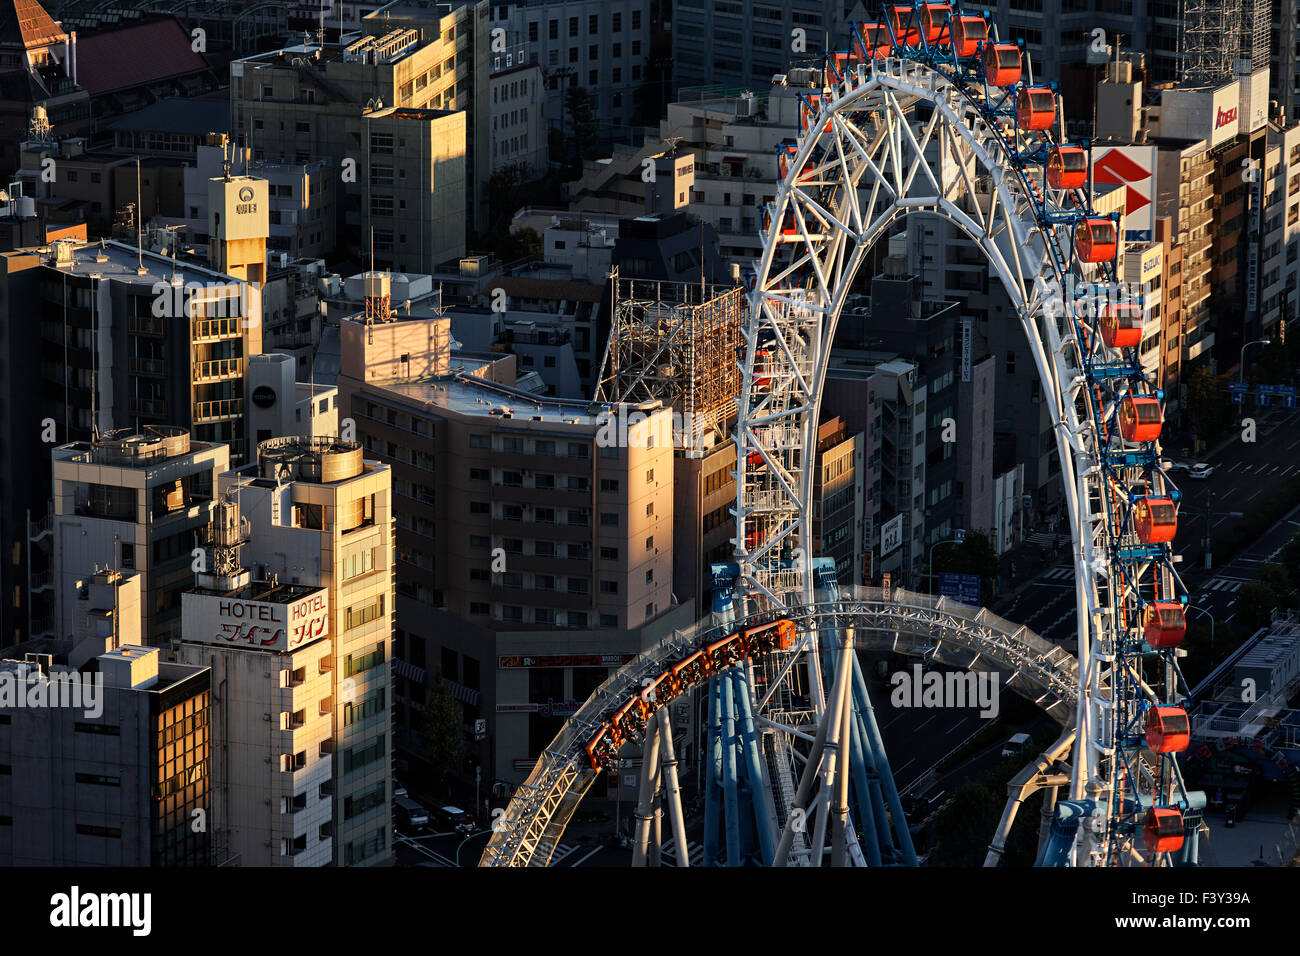 Japan, Honshu island, Kanto, Tokyo, amusement park above buildings roofs. - Stock Image